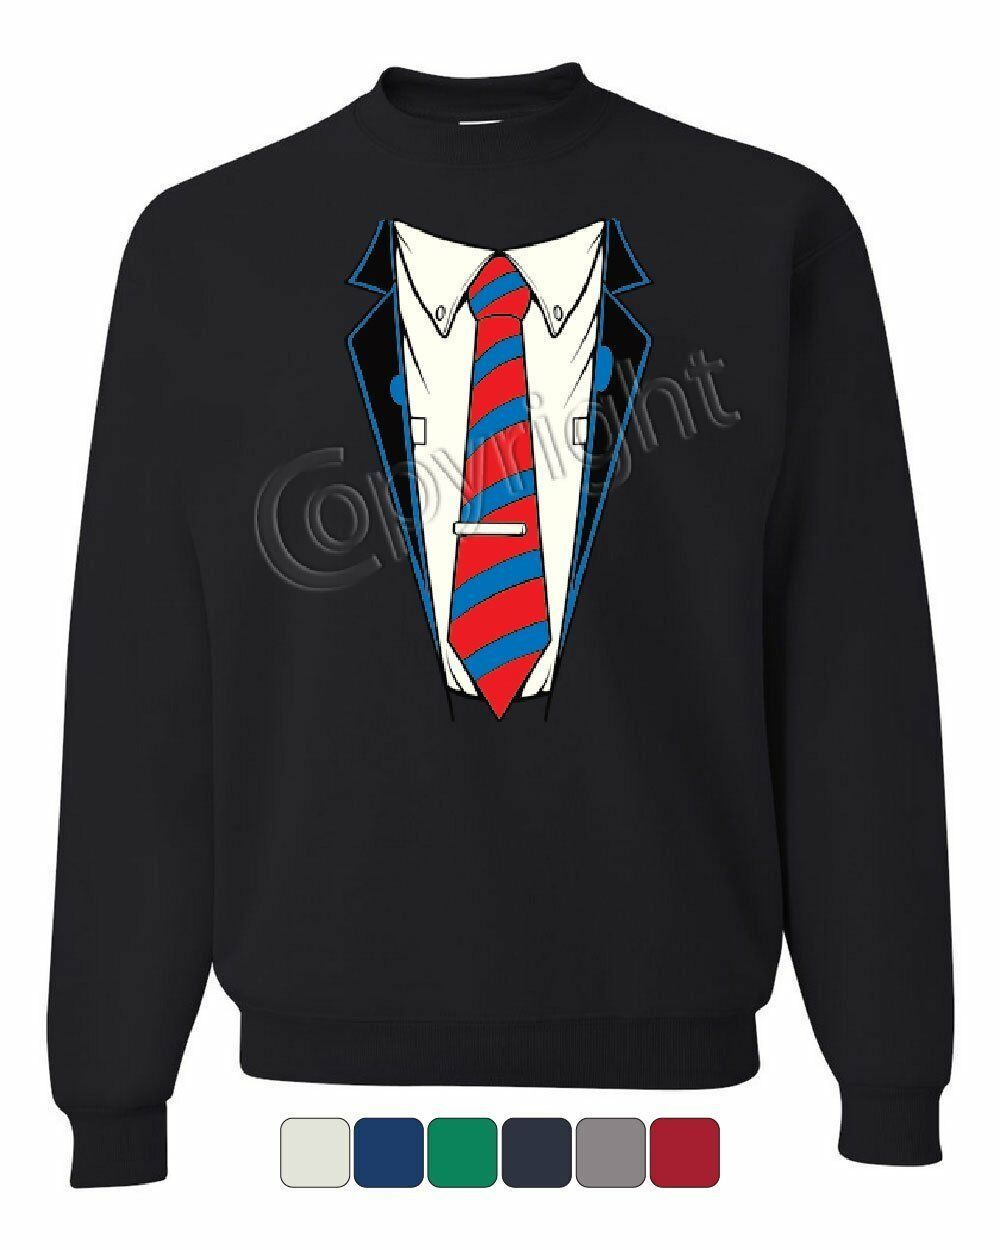 Primary image for Shirt and Tie Sweatshirt Office Suit Casual Funny Sweater